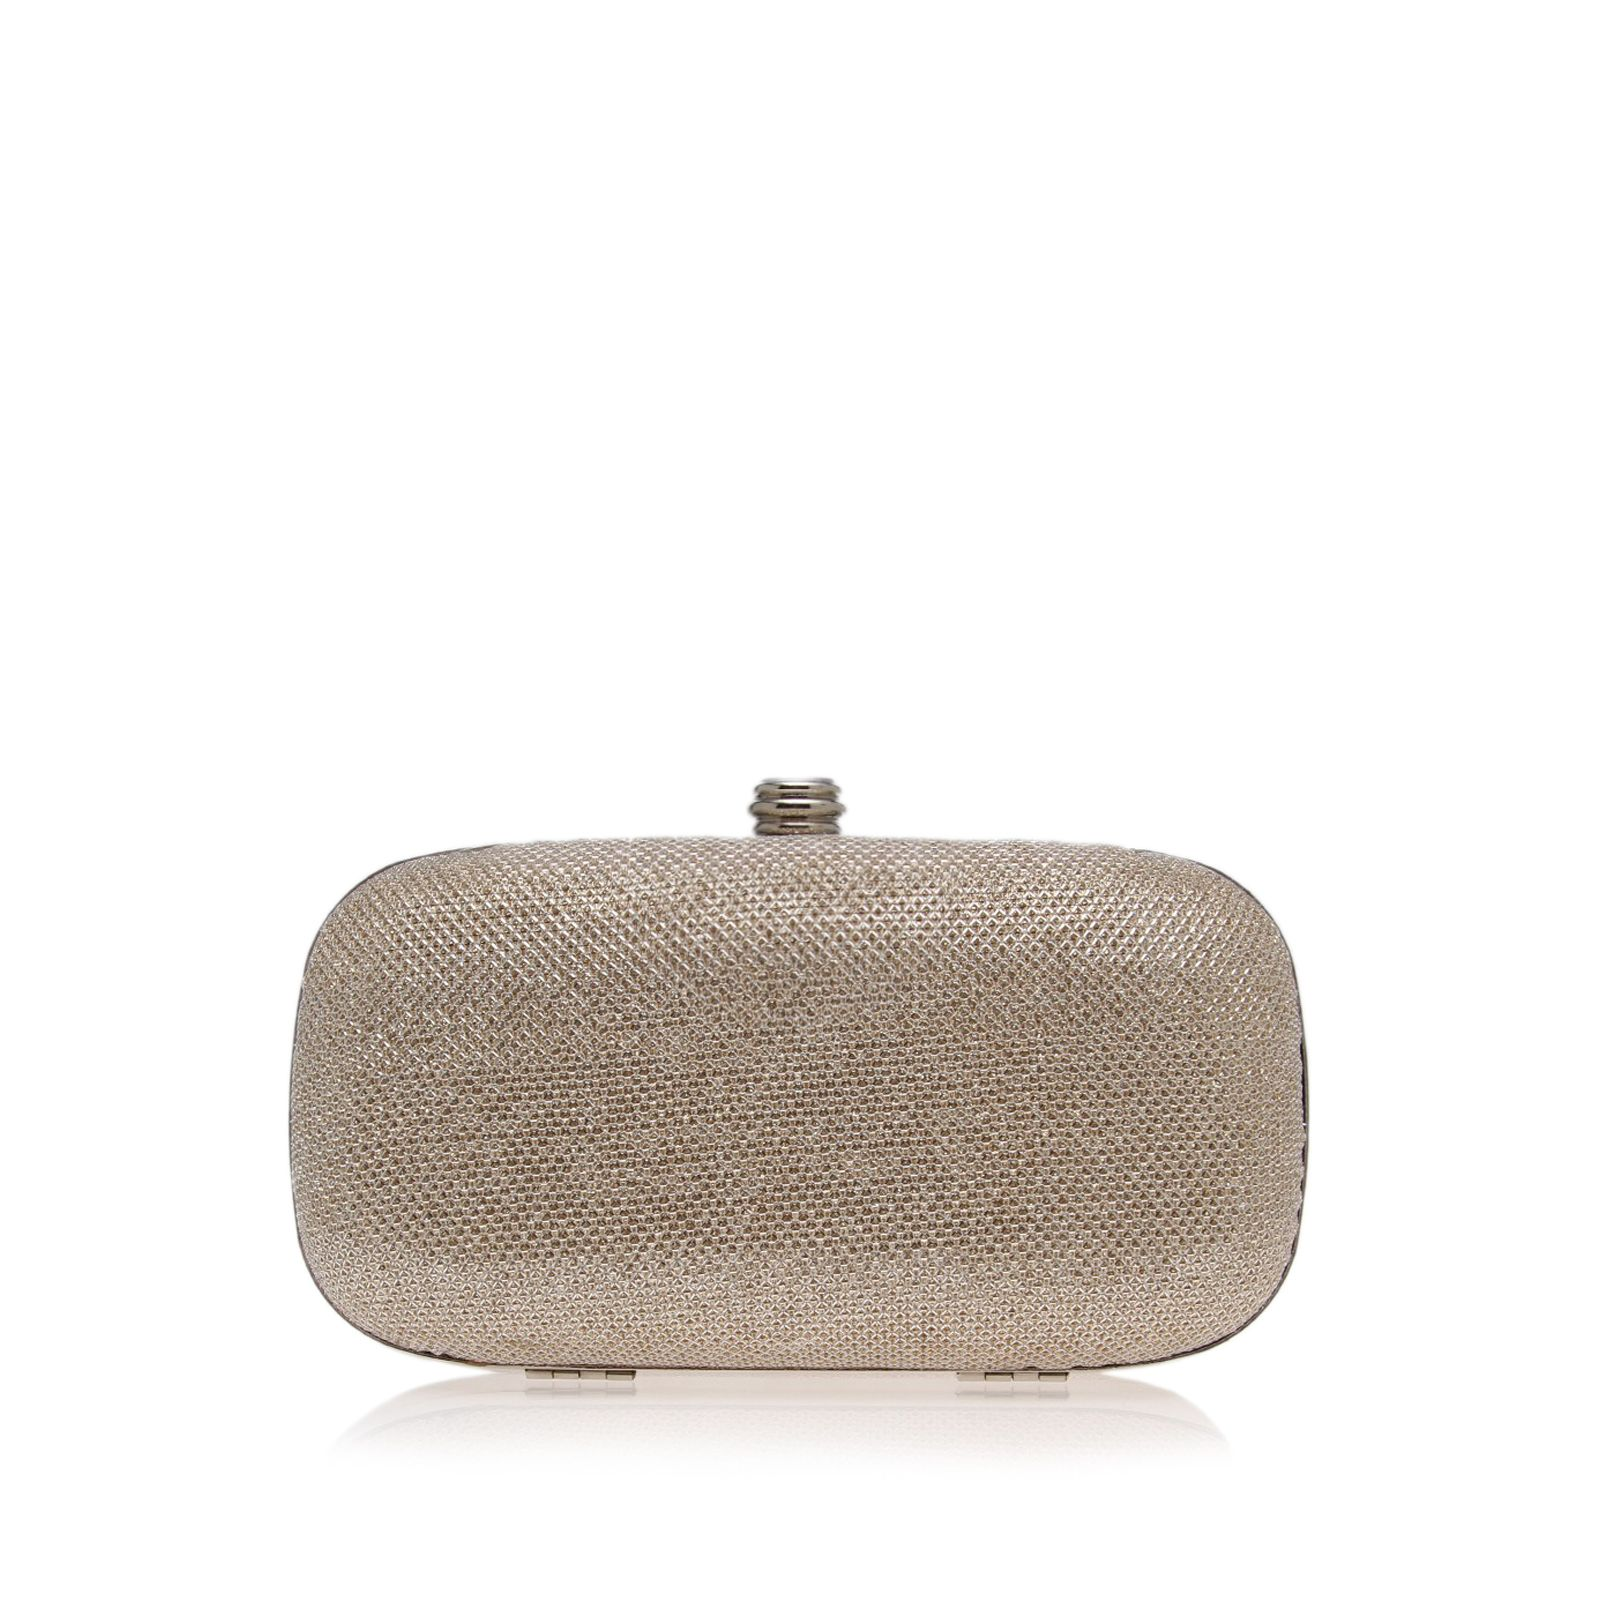 Cheap oversized clutch bags with many colors for the bride for sale. Black, red, silver evening bags clutches are popular. weddingdresstrend offers wholesale and retail for high quality clutch bags%(5).